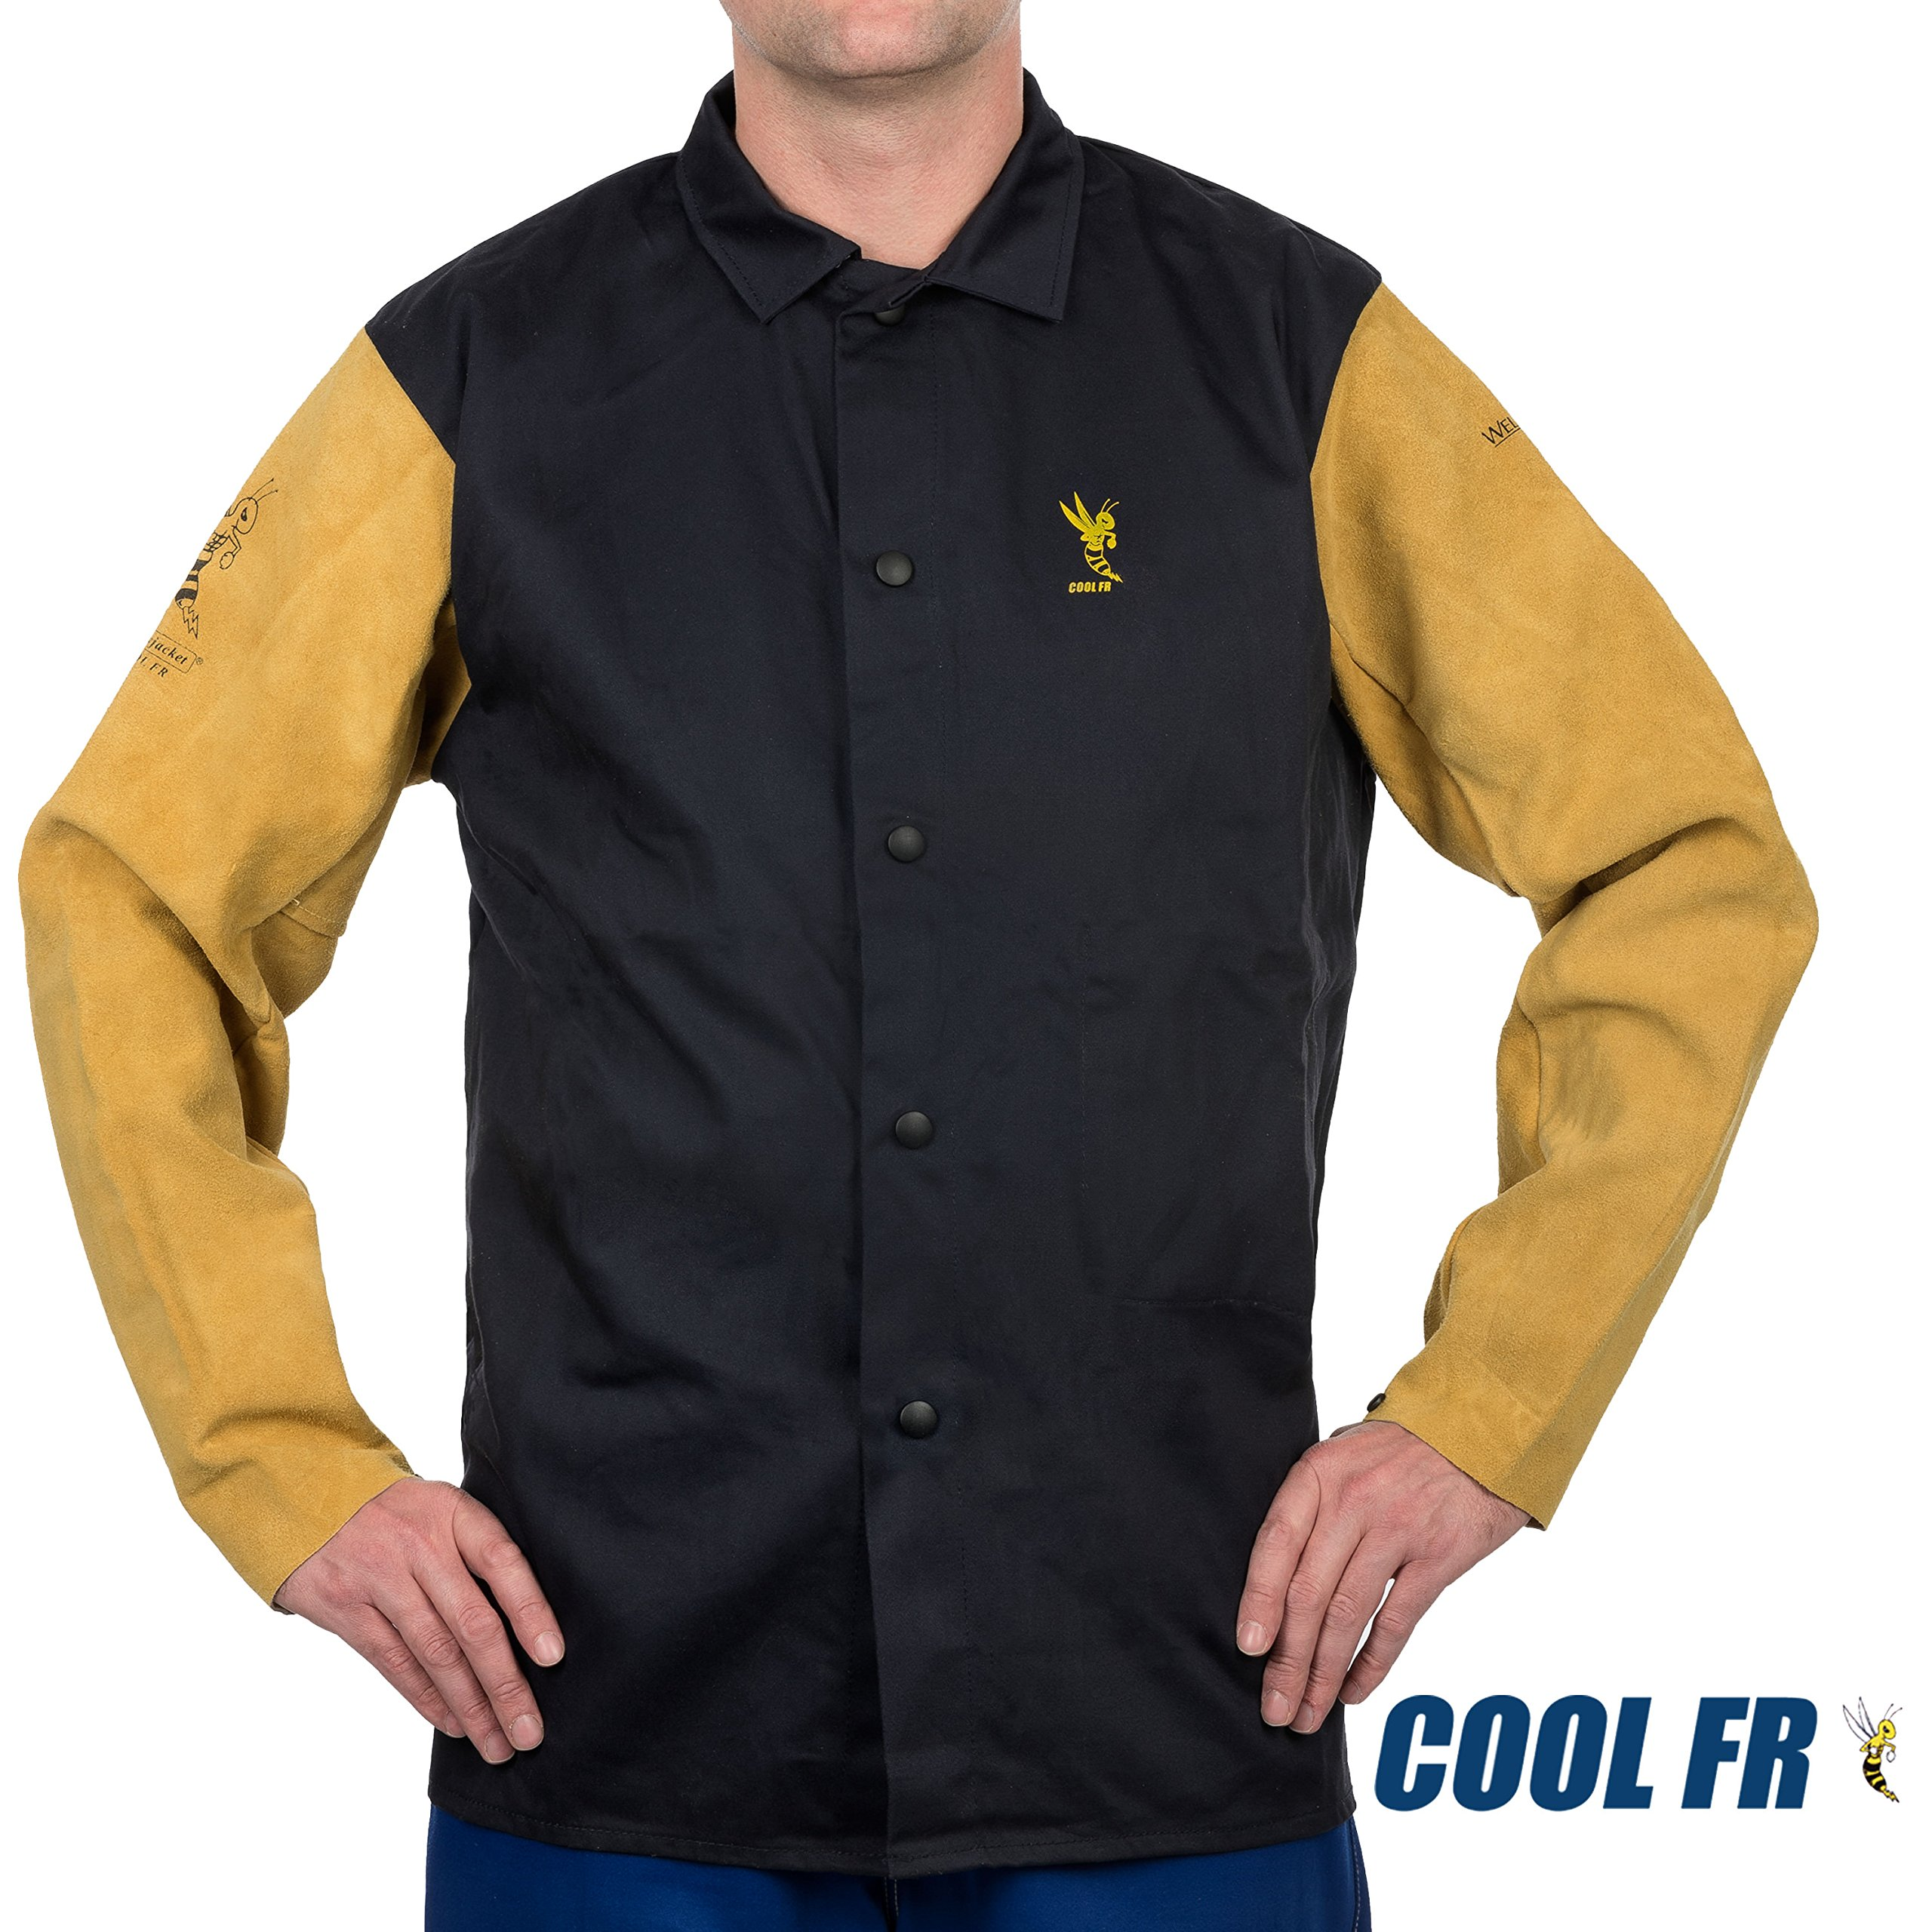 Weldas COOL FR Welding/Fire Retardant/Dielectric Jacket - Cotton and Leather Kevlar Sewn Sleeves - Navy Blue - Size XXL